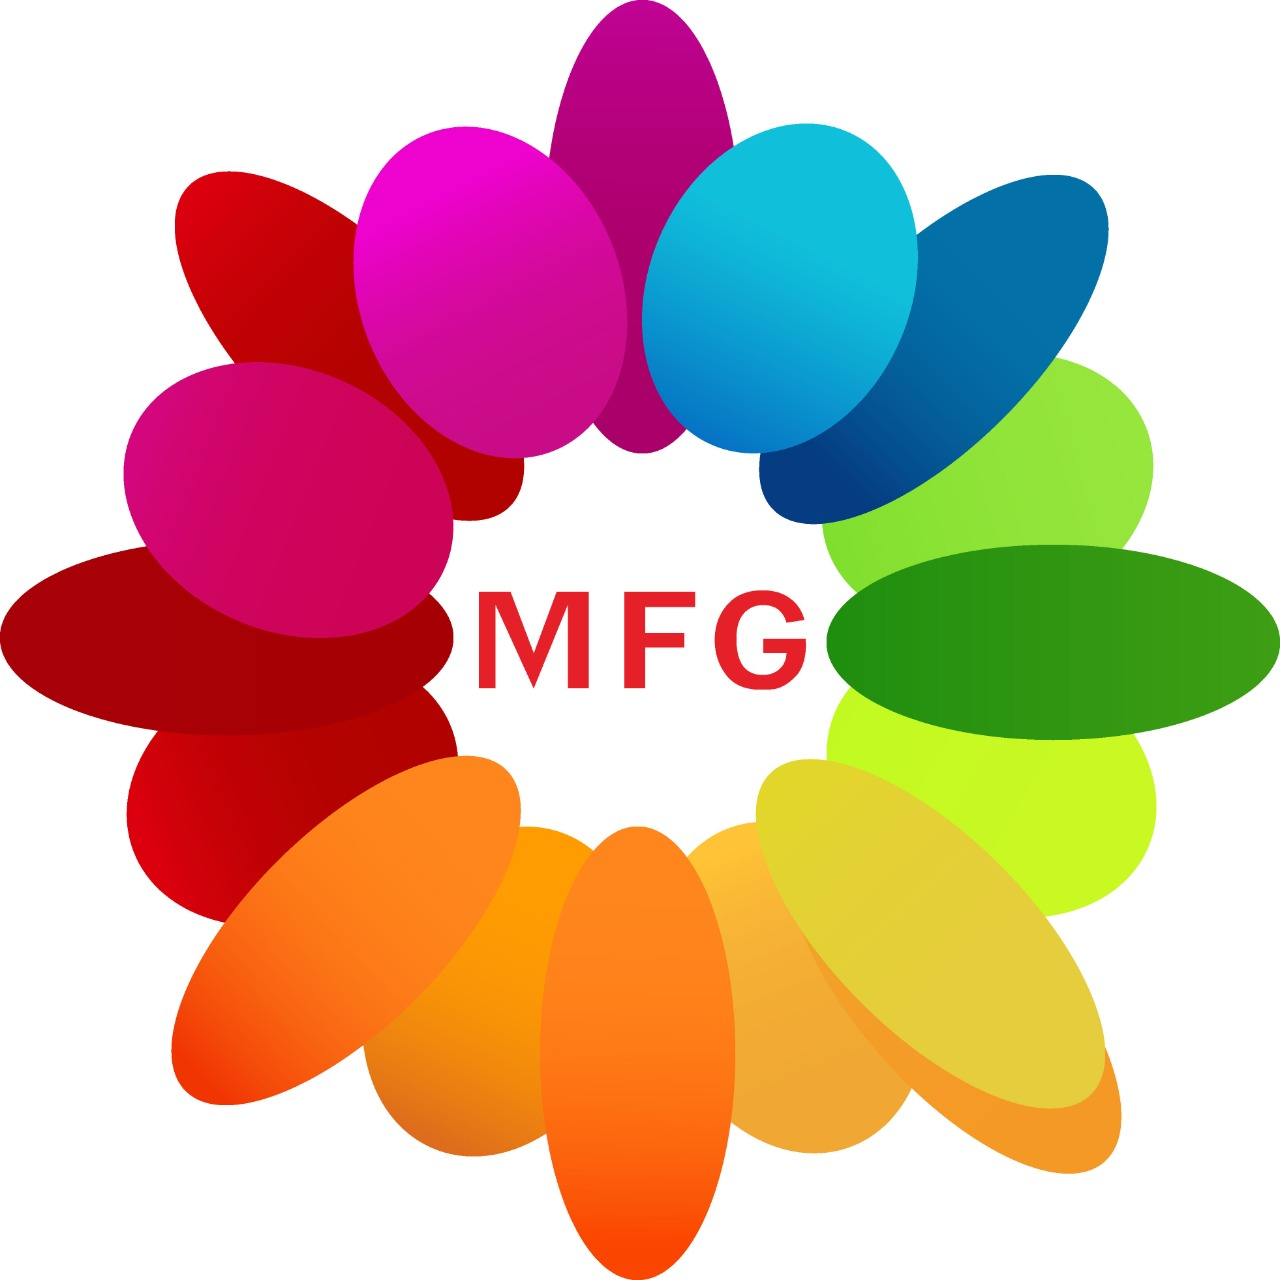 Bunch of 100 red roses bottle of champegne 1 kg chocolate cake 10 heart shape balloons